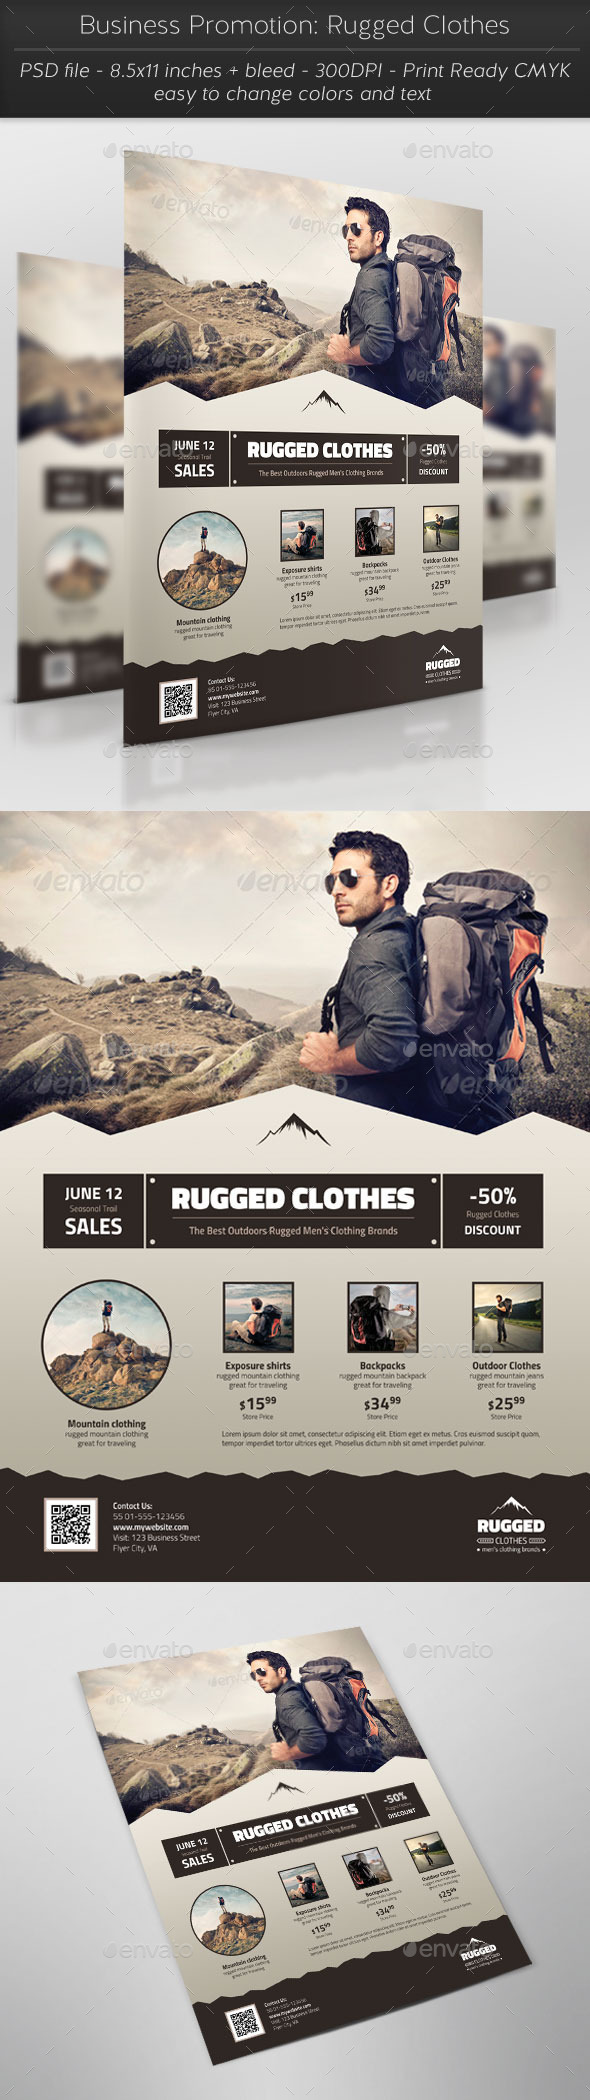 GraphicRiver Business Promotion Rugged Clothes 11554860